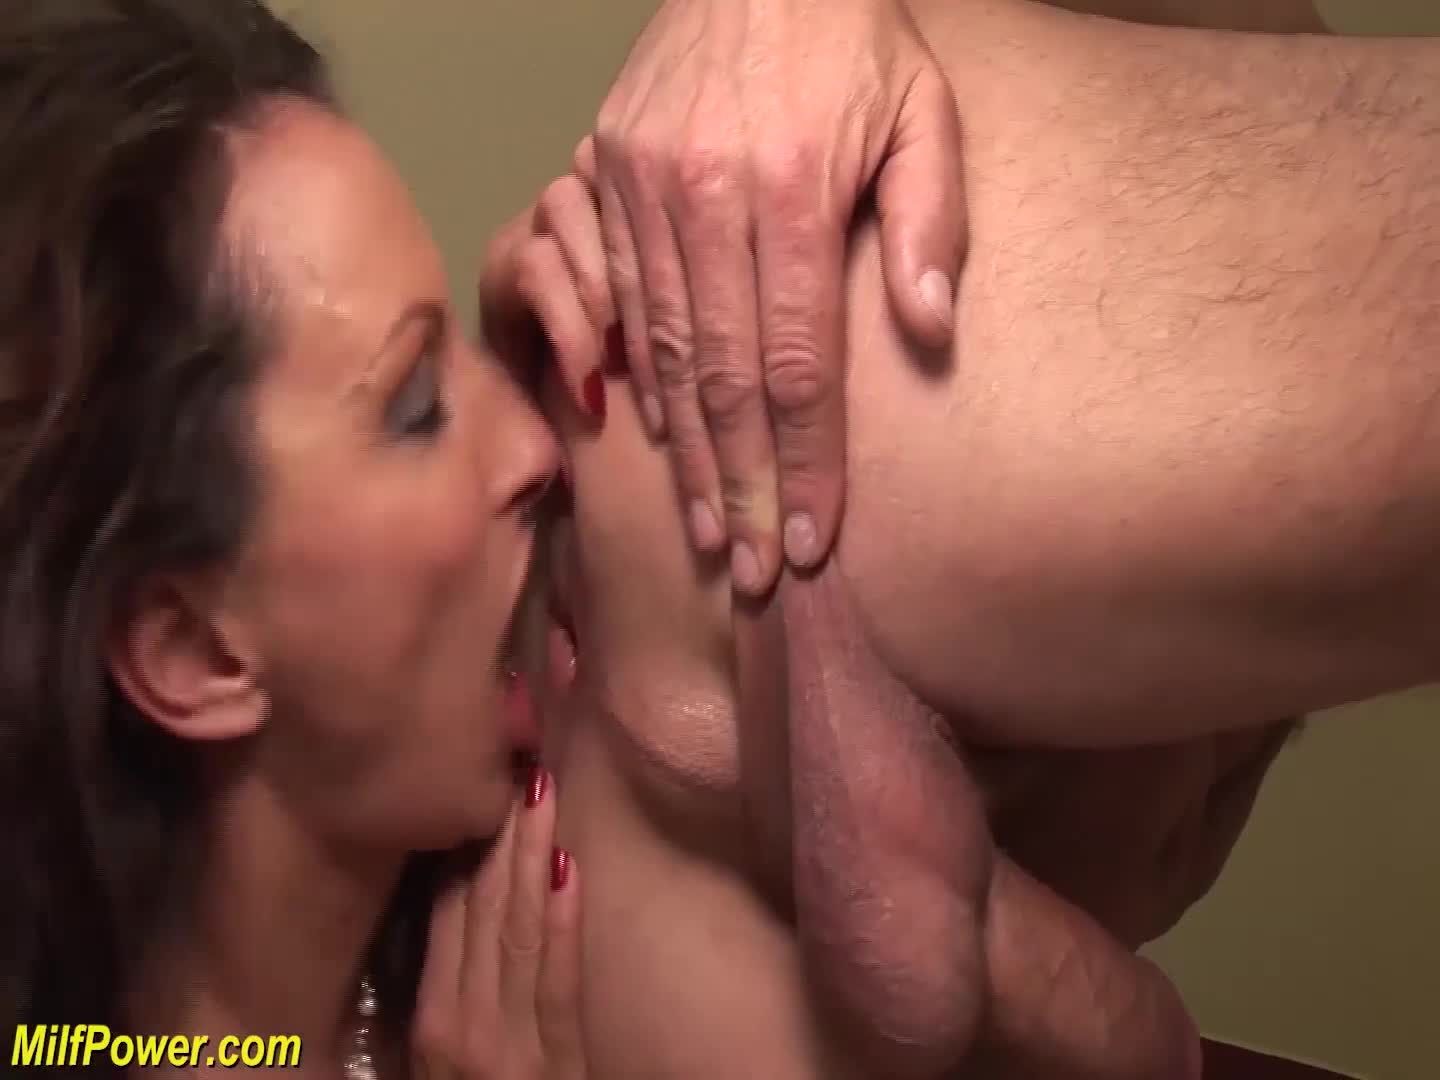 Max recommend Sweet licking pee gaysex